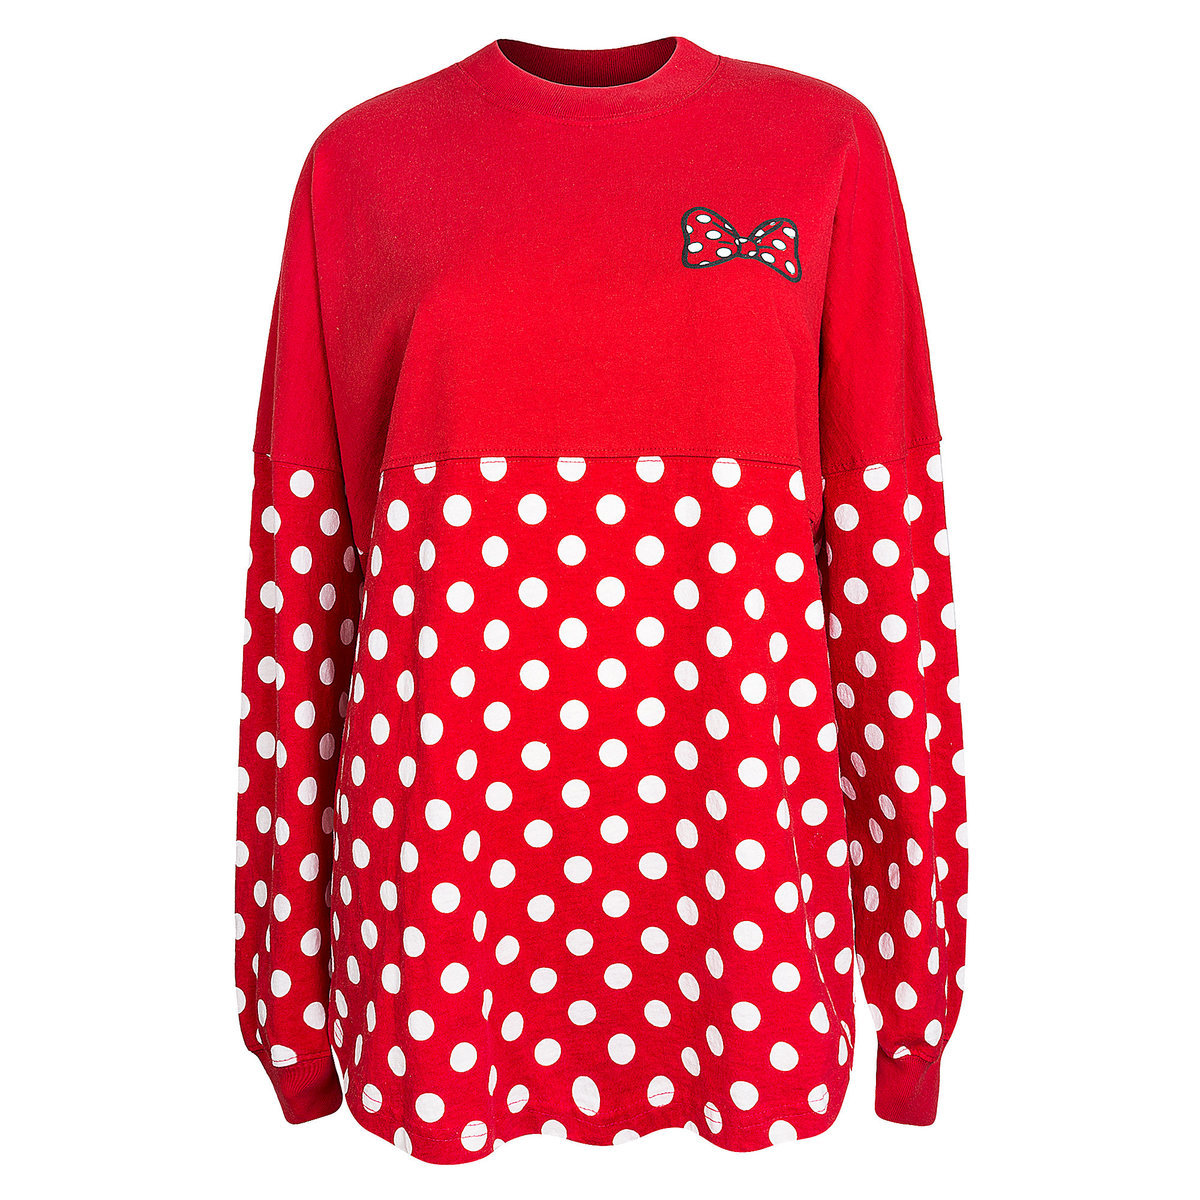 Product Image of Minnie Mouse Polka Dot Spirit Jersey for Adults - Walt Disney World # 1